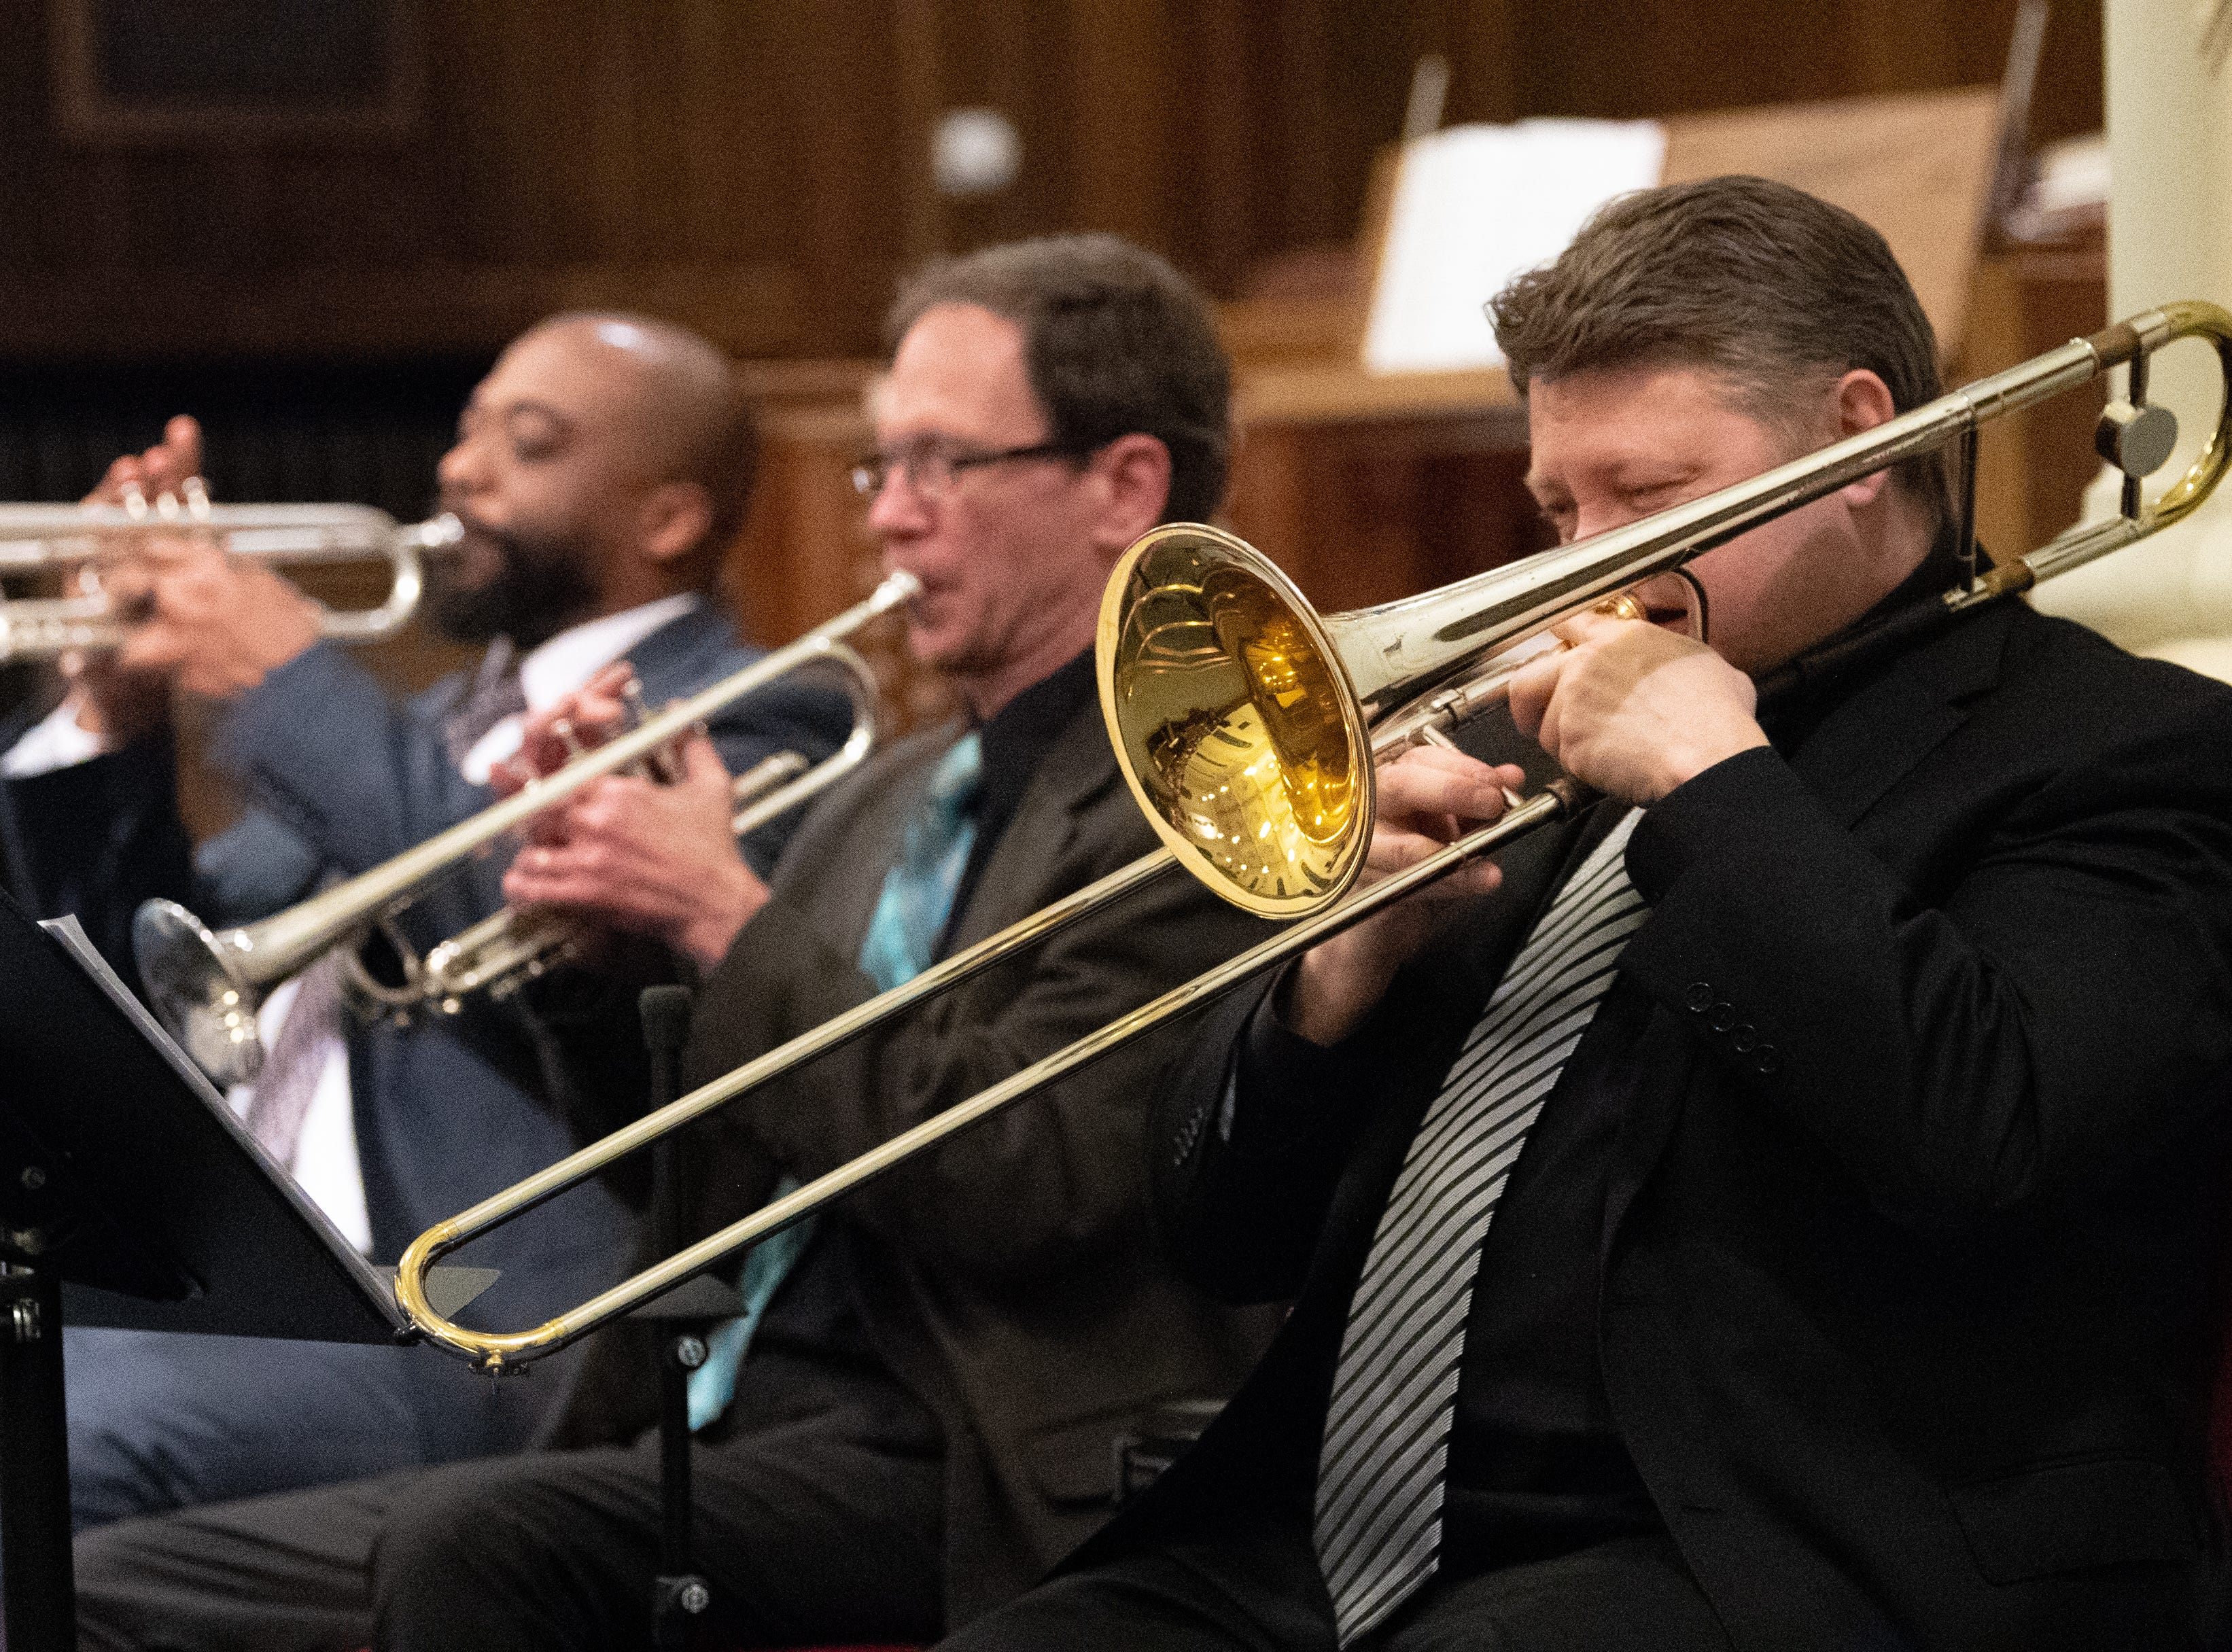 The horn section swings with the music during the 21st annual Jazz Vespers concert at First Presbyterian Church in York, January 12, 2019.